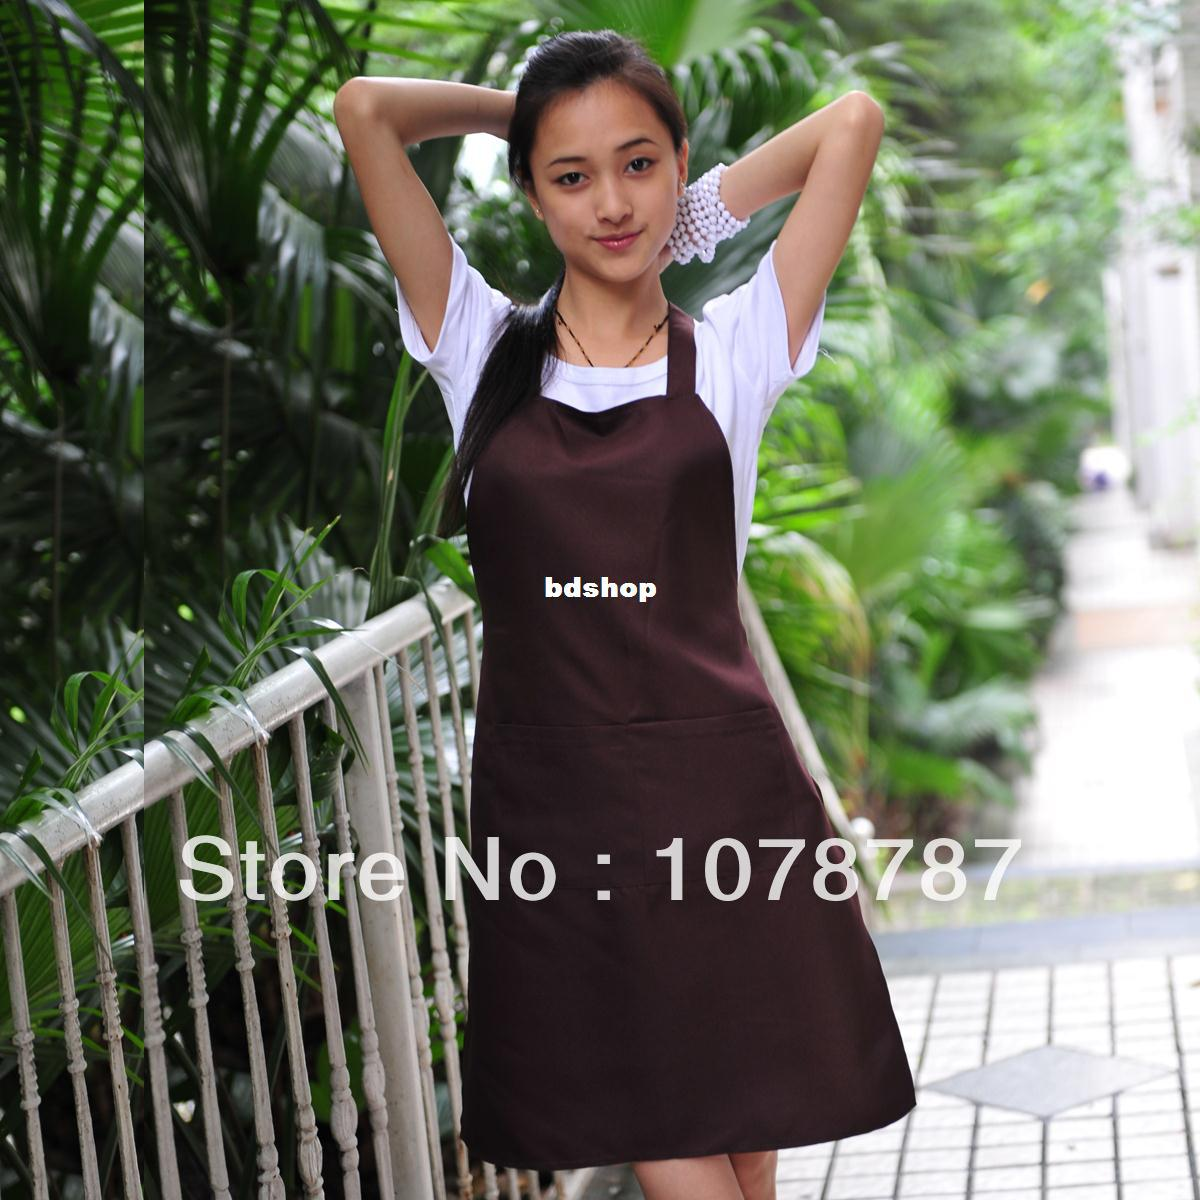 White apron meaning - Sexy Kitchen Apron Brief Uniforms Fabric Chef Apron Work Aprons Apron For Hairdresser